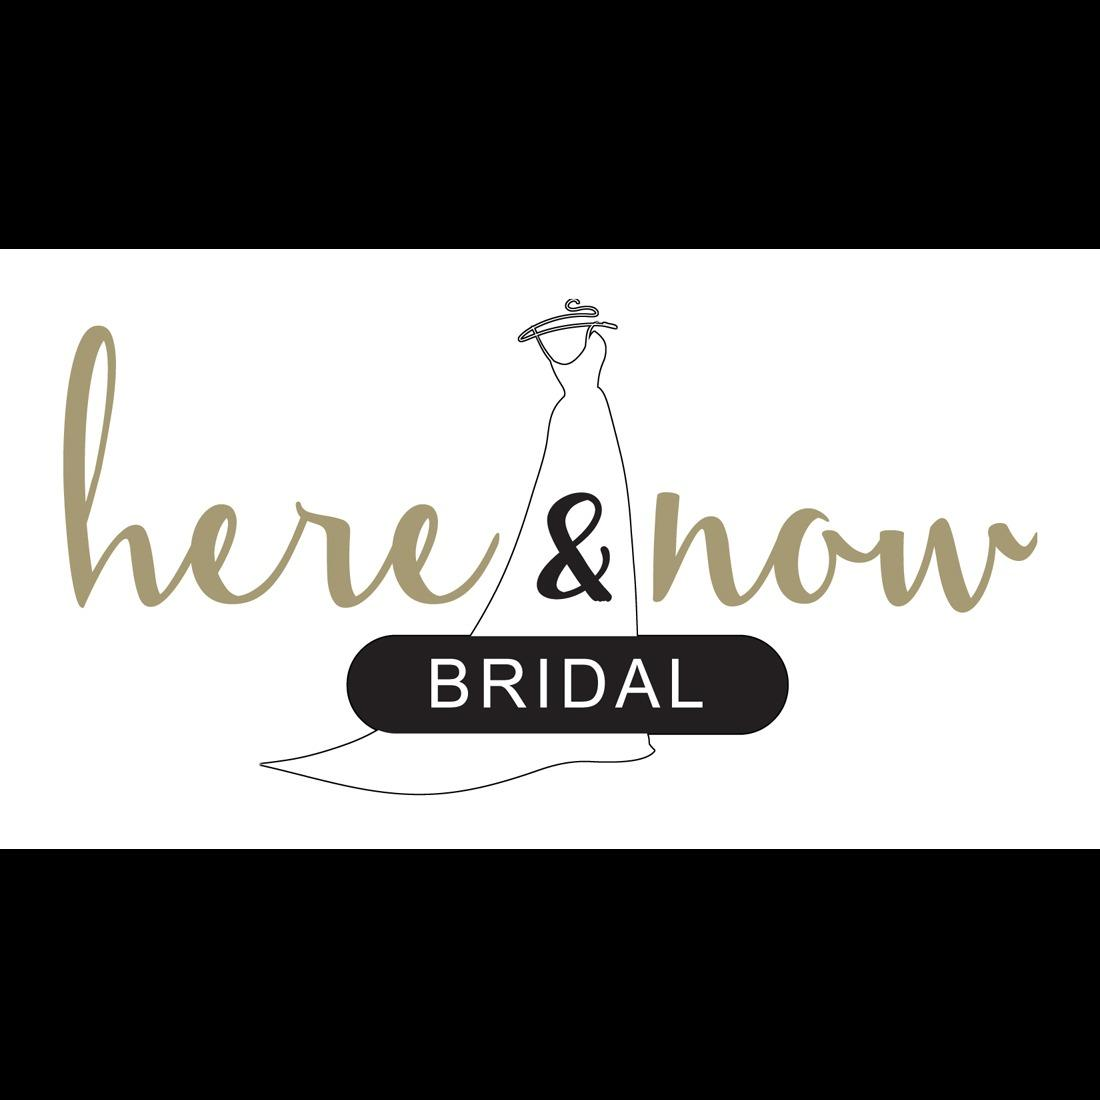 Here & Now Bridal image 3